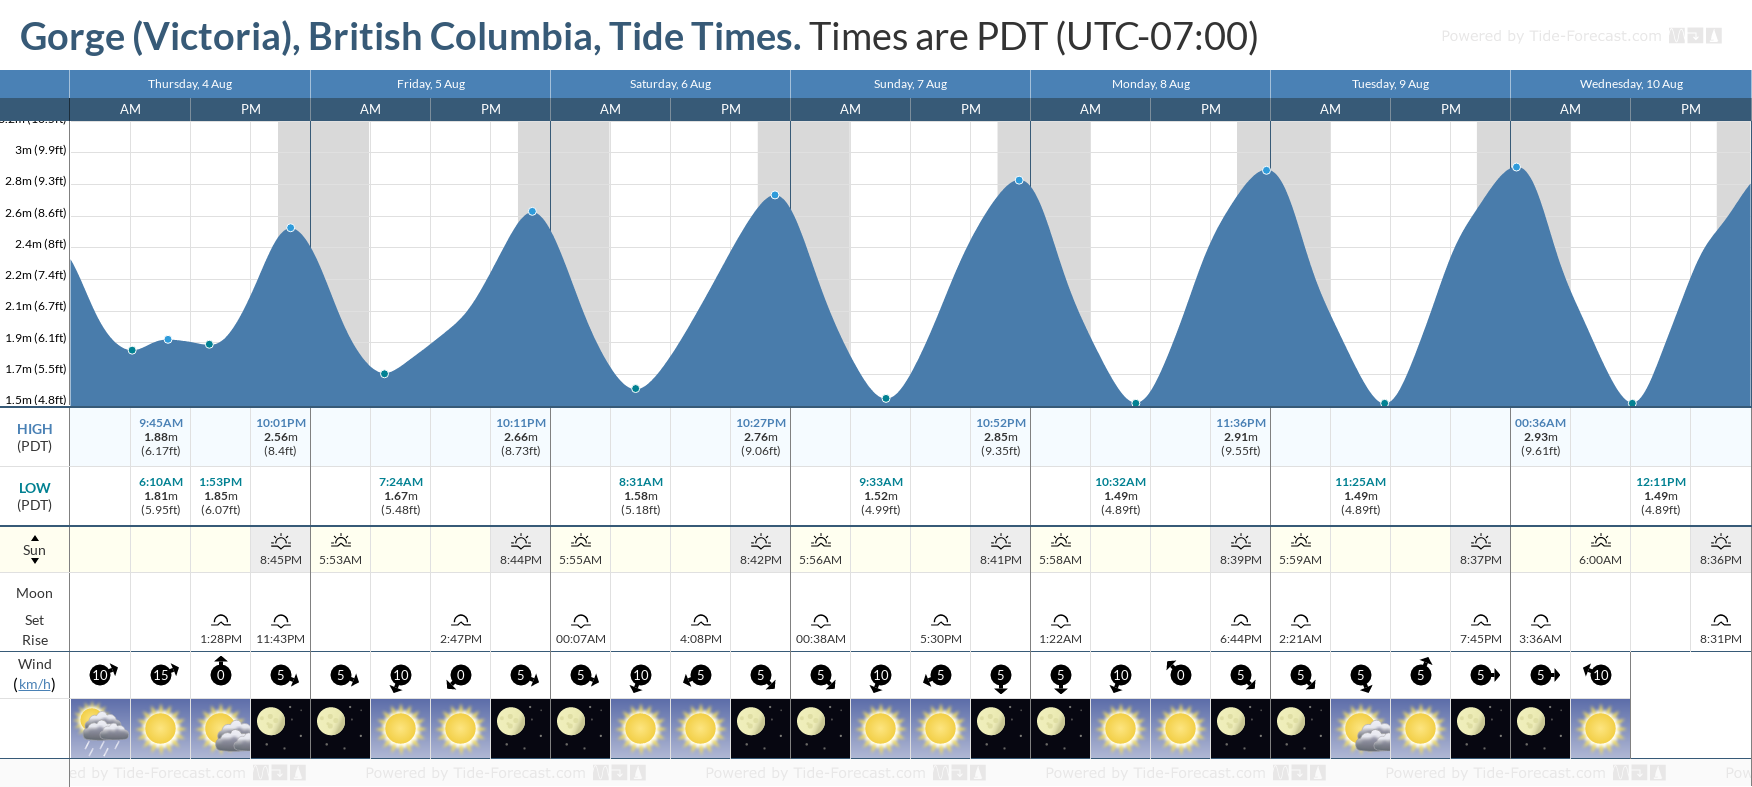 Gorge (Victoria), British Columbia Tide Chart including high and low tide tide times for the next 7 days